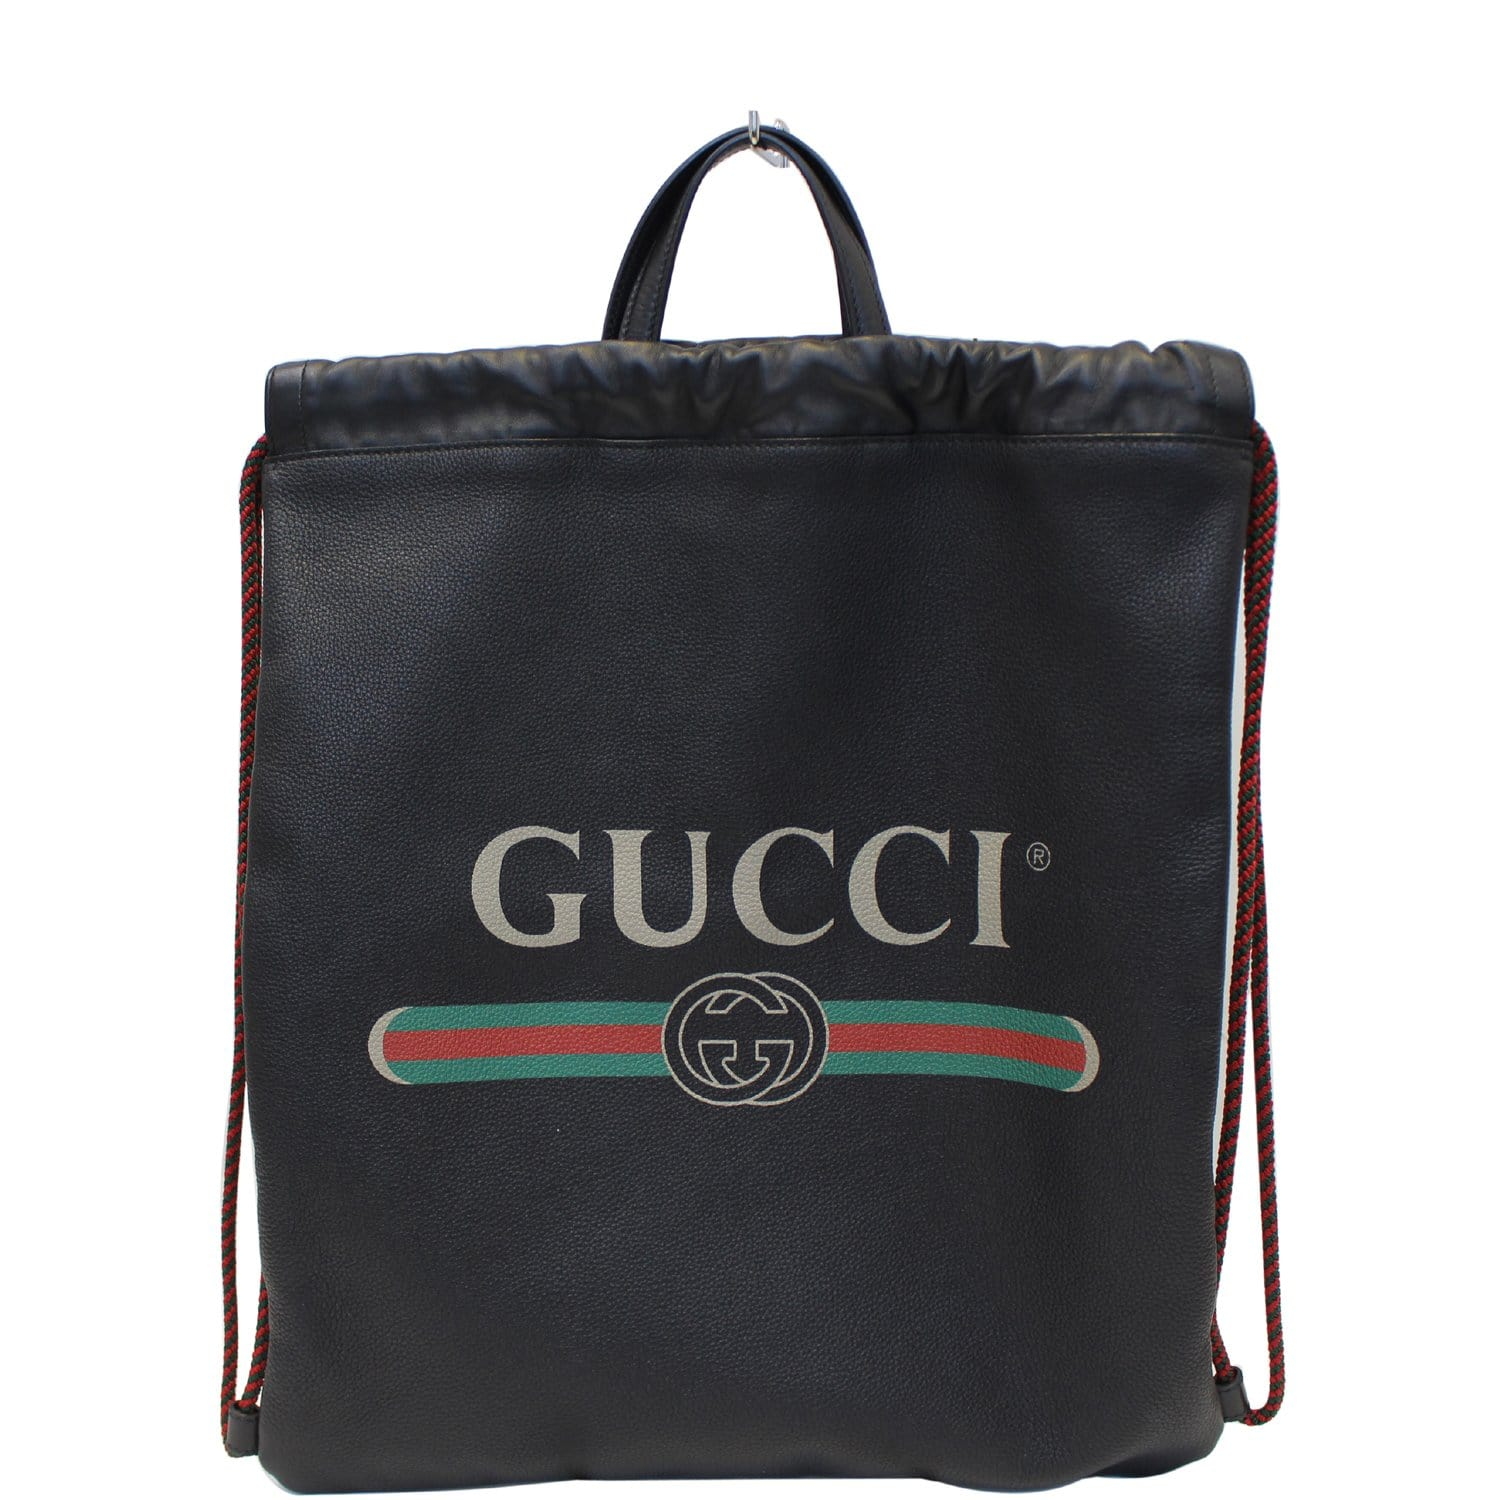 24ac5a27e1 GUCCI Print Leather Drawstring Backpack Bag 494053